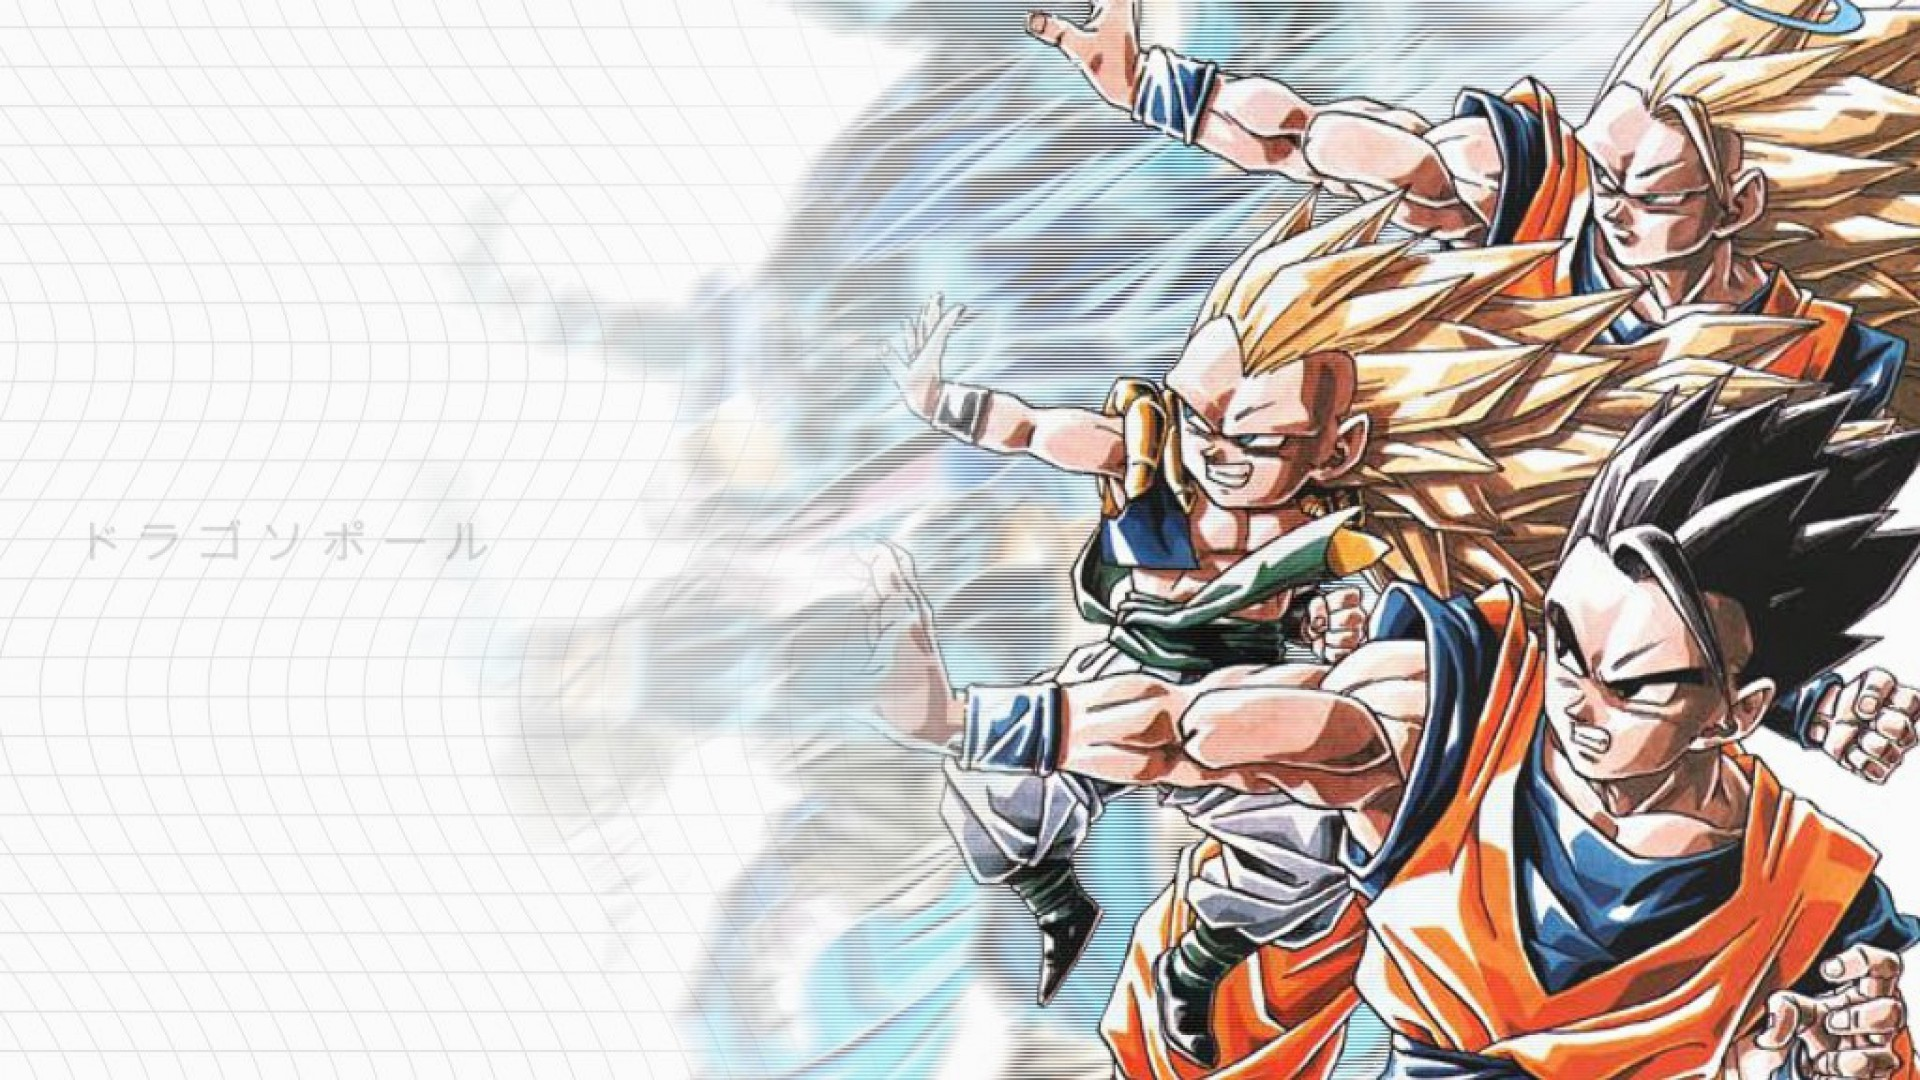 Dragon Ball Z HD Wallpapers and Backgrounds 1920×1200 Dragonball Z Wallpaper  (33 Wallpapers